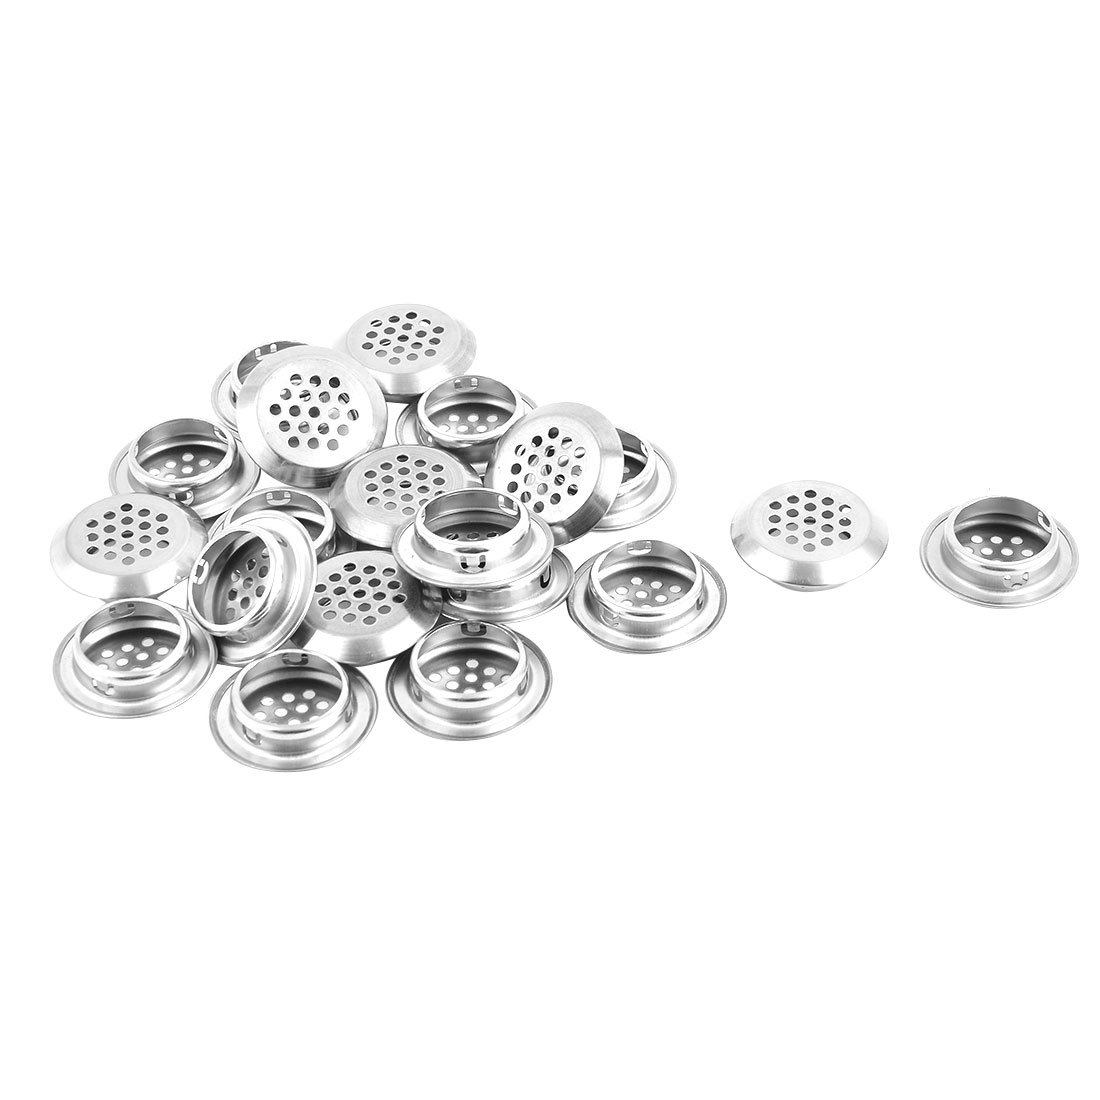 uxcell Stainless Steel Household Bathroom Round Mesh Hole Sink Residue Strainer 20pcs